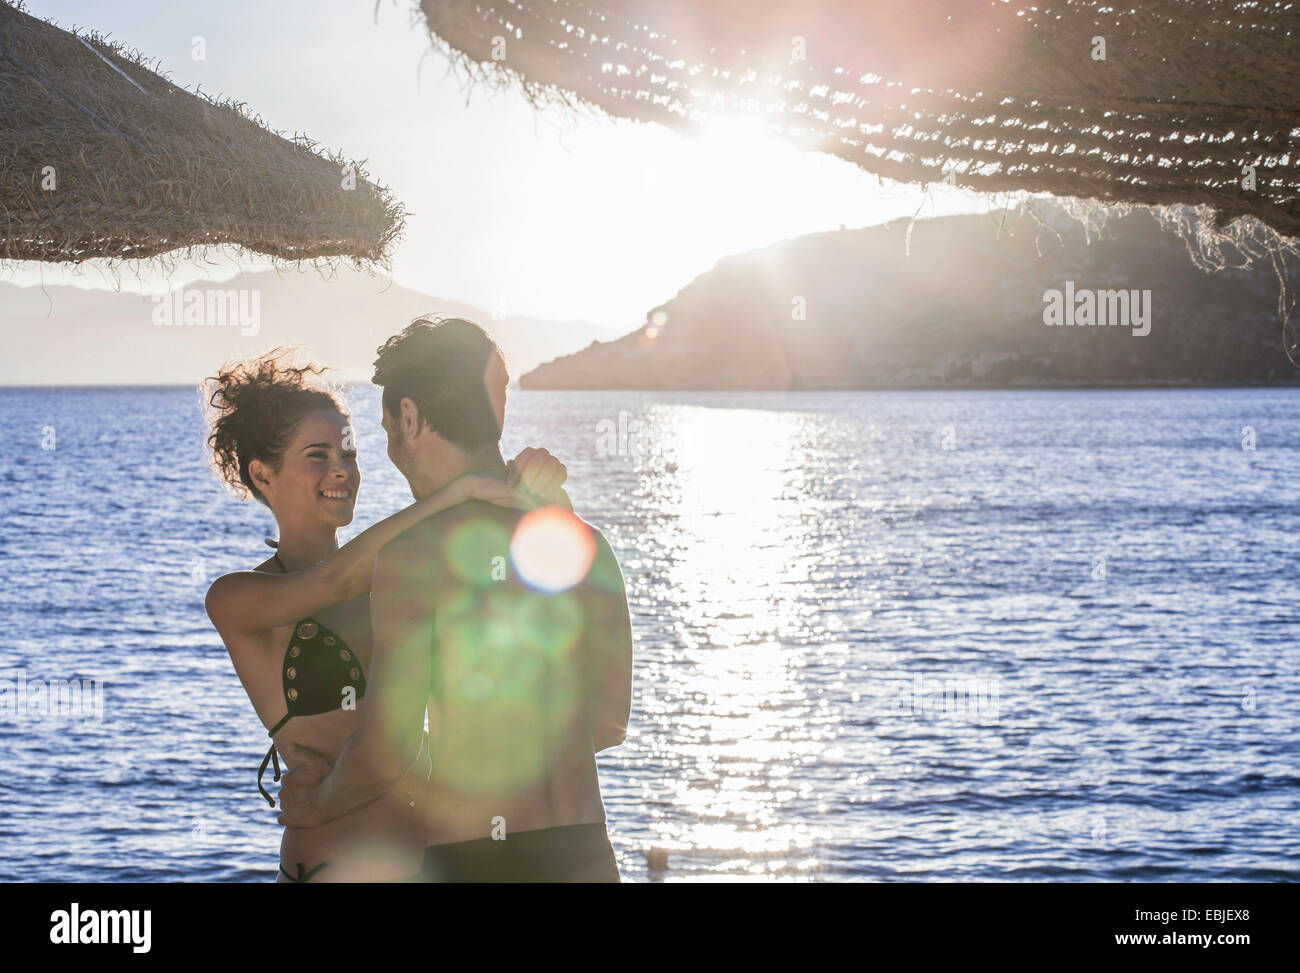 Couple embracing on vacation - Stock Image